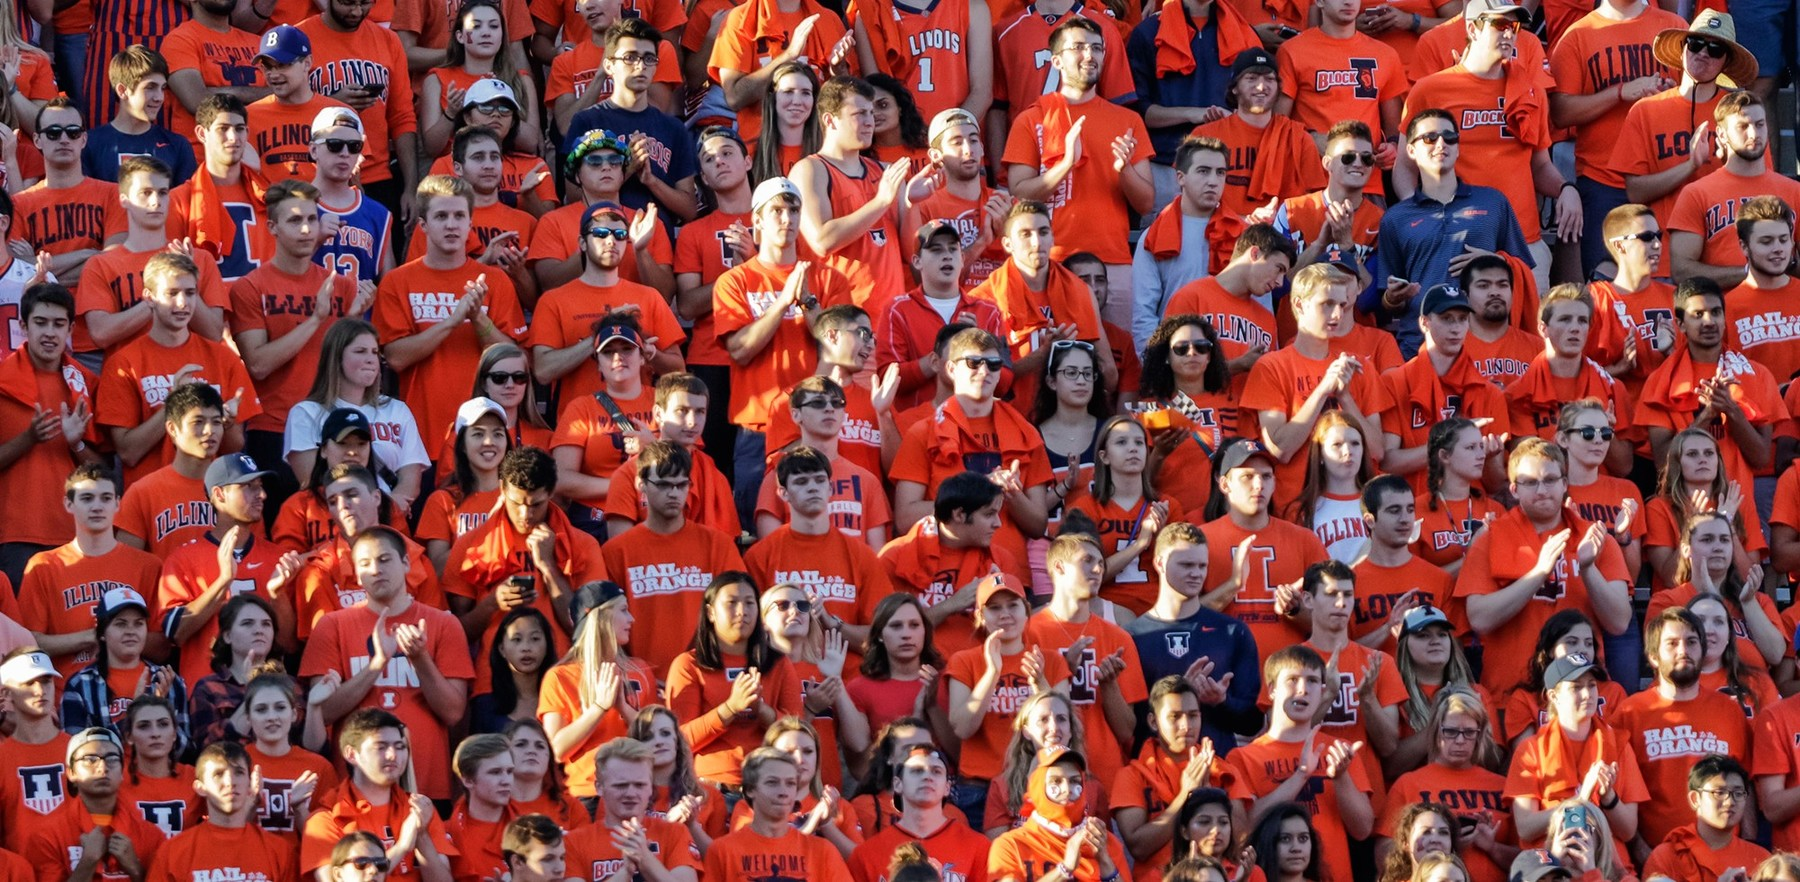 orange-clad students in the Block I cheering section